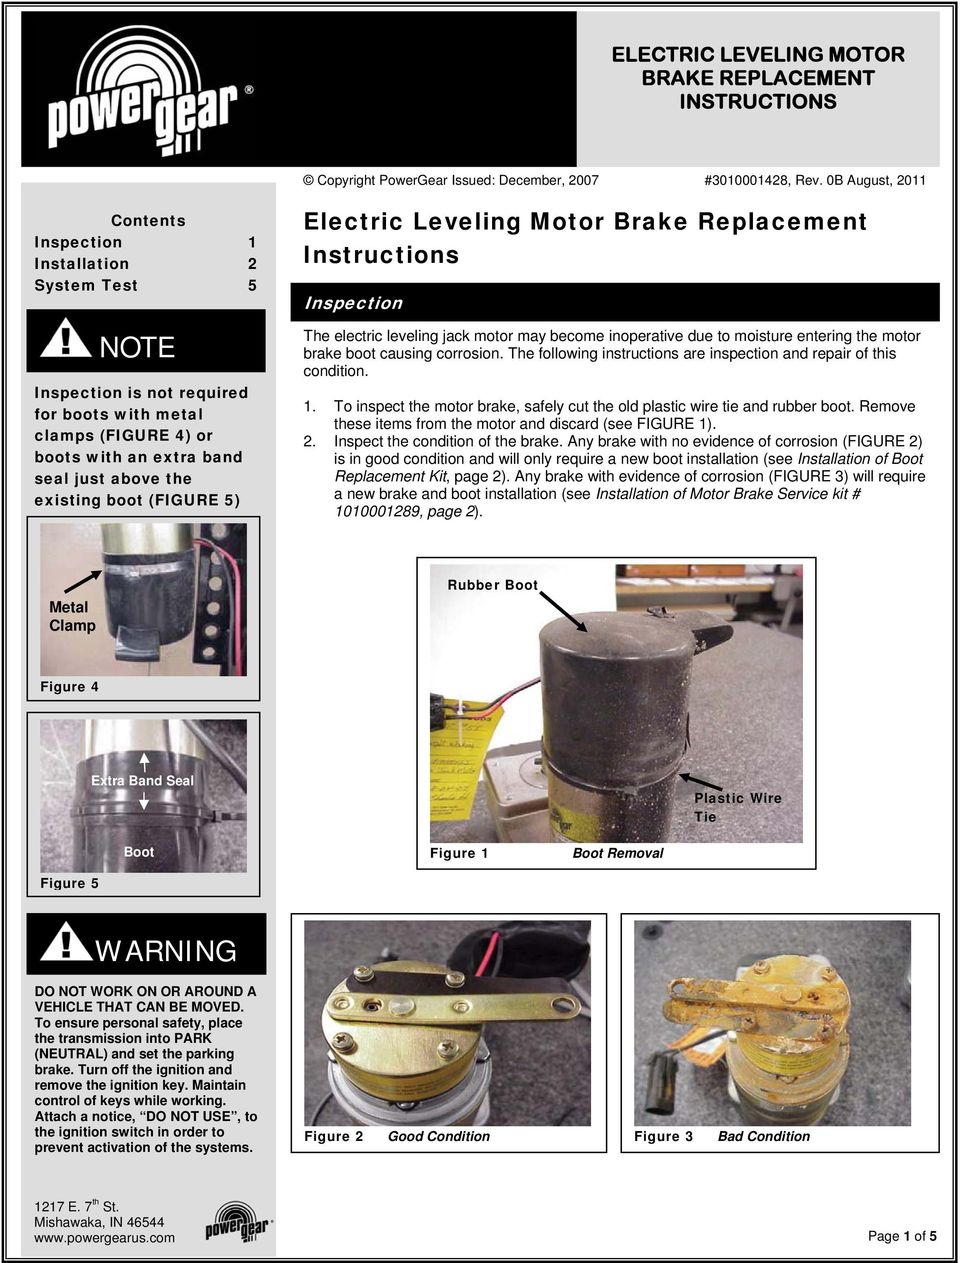 0B August, 2011 Electric Leveling Motor Brake Replacement Instructions Inspection The electric leveling jack motor may become inoperative due to moisture entering the motor brake boot causing